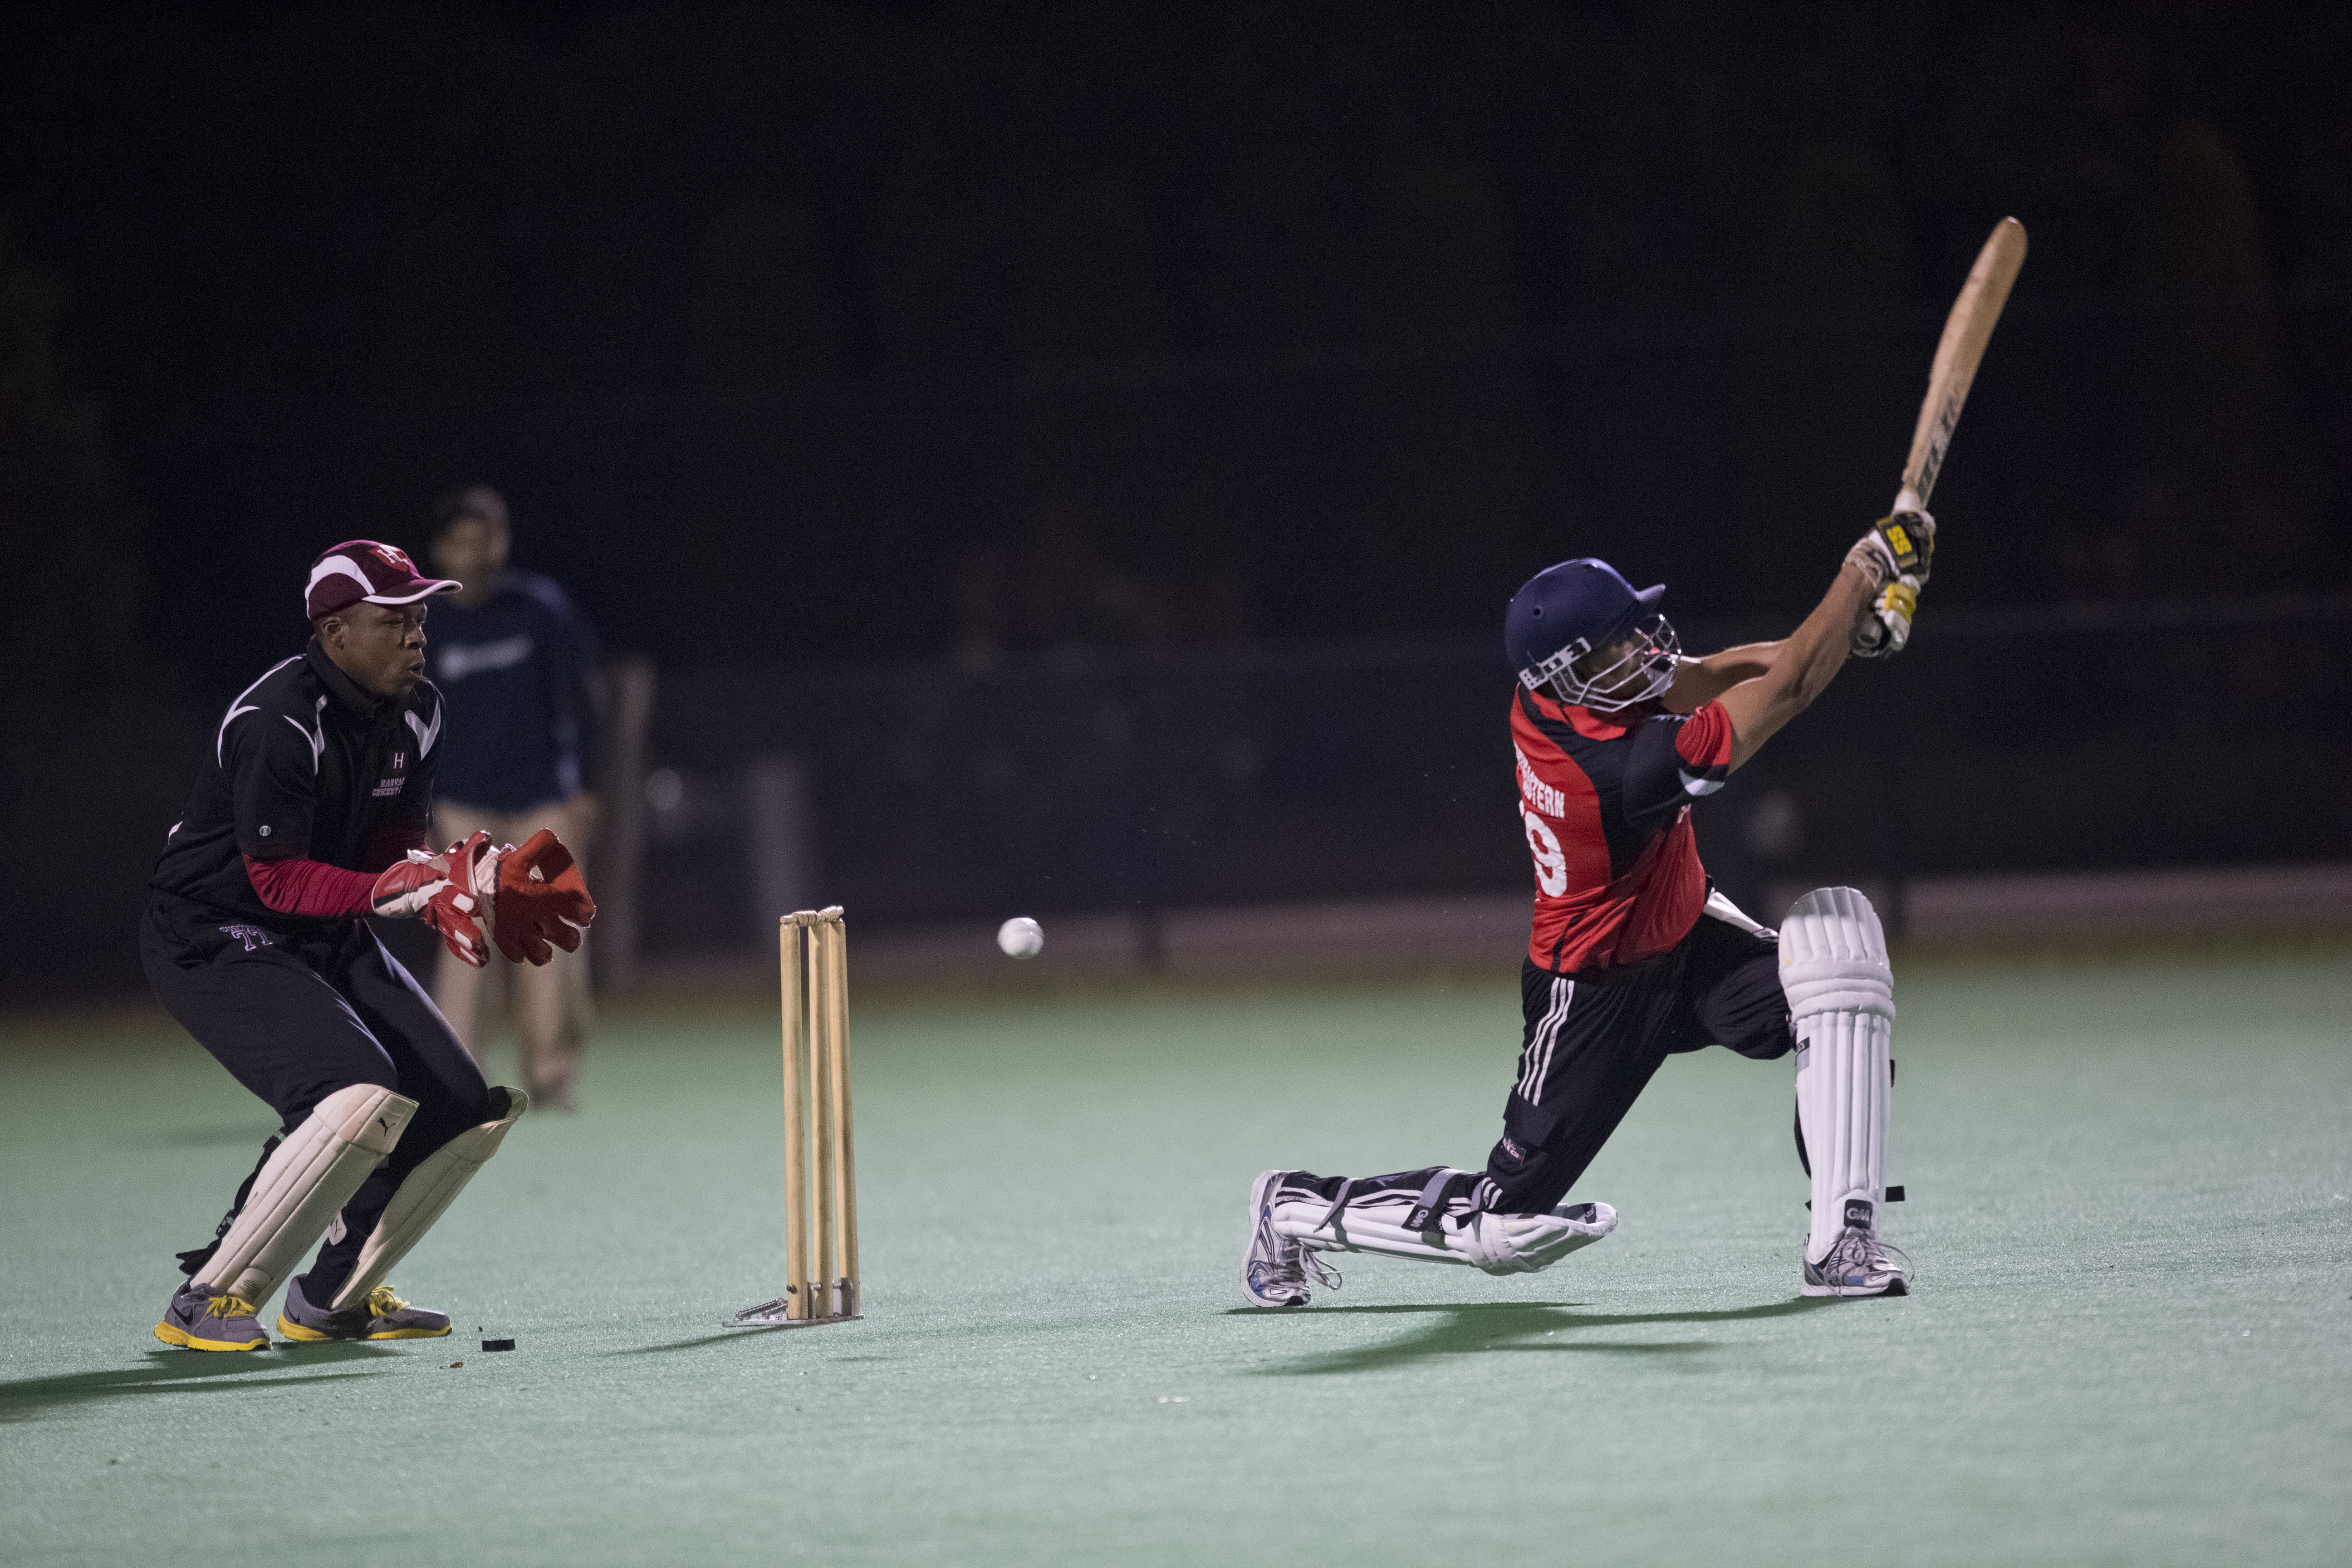 Cricket Growing In Popularity On American College Campuses